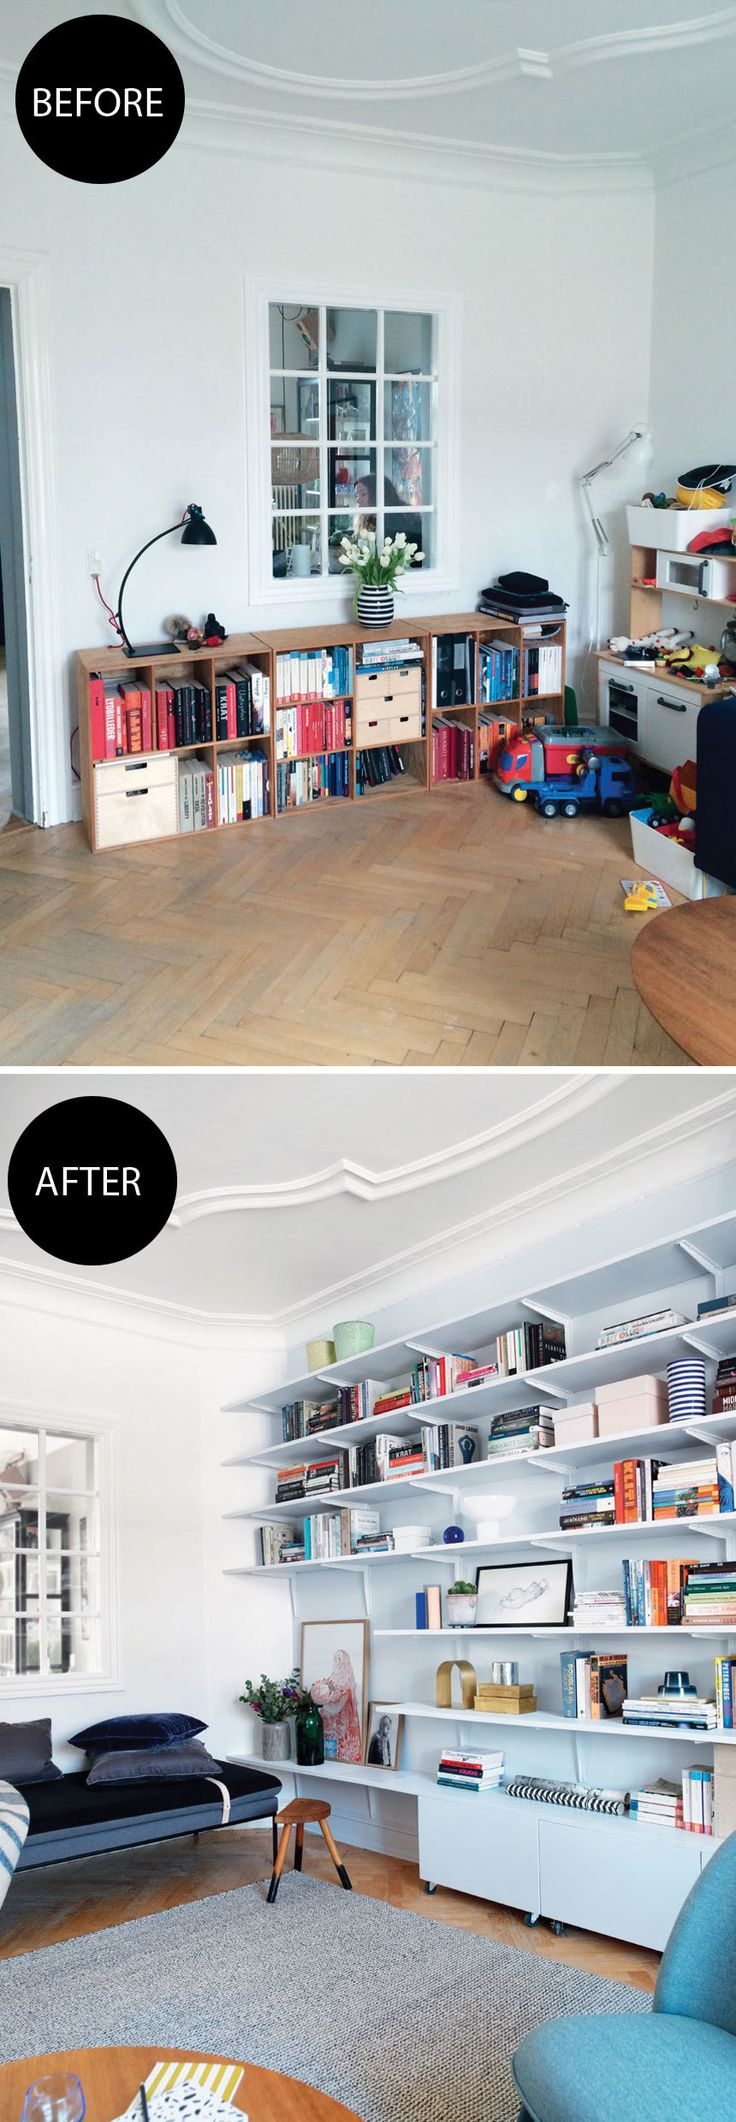 The makeover of this living room is amazing. It was transformed from a messy corner to a stylish living room with beautiful storage.